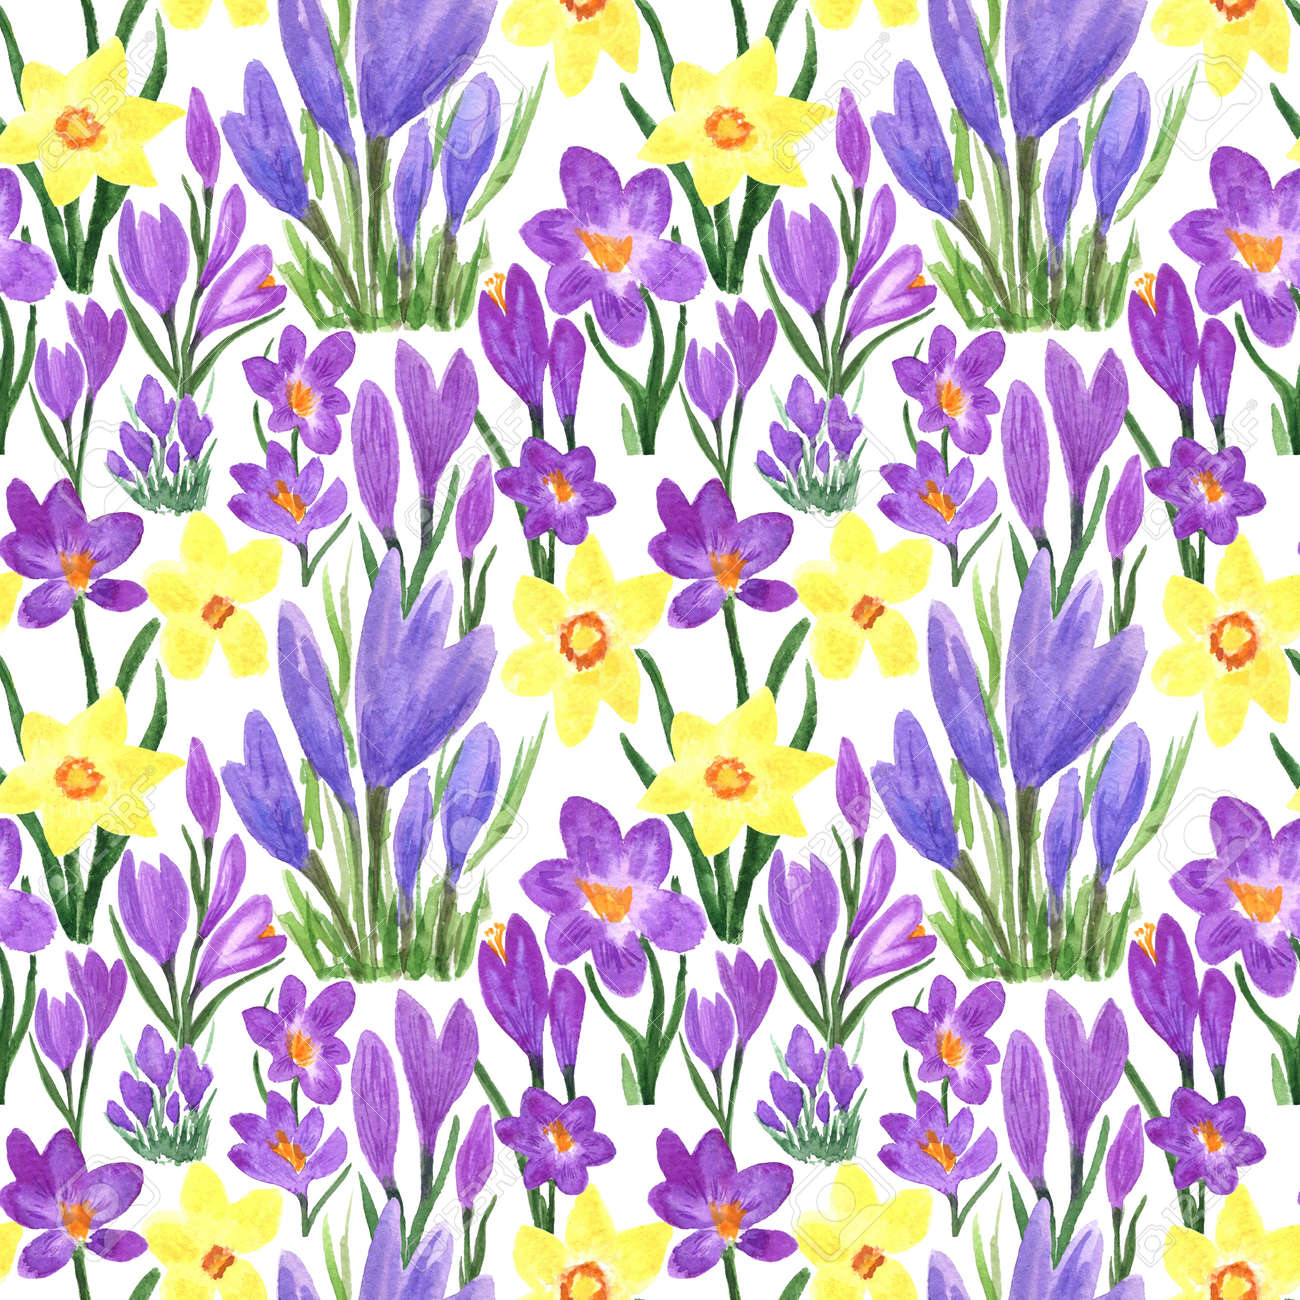 Waterclor colorful seamless pattern of spring flowers. Hand Illustration of primrose for creating fabrics, textile, decoupage, wallpapers, print, gift wrapping paper, invitations, textile. - 166801061